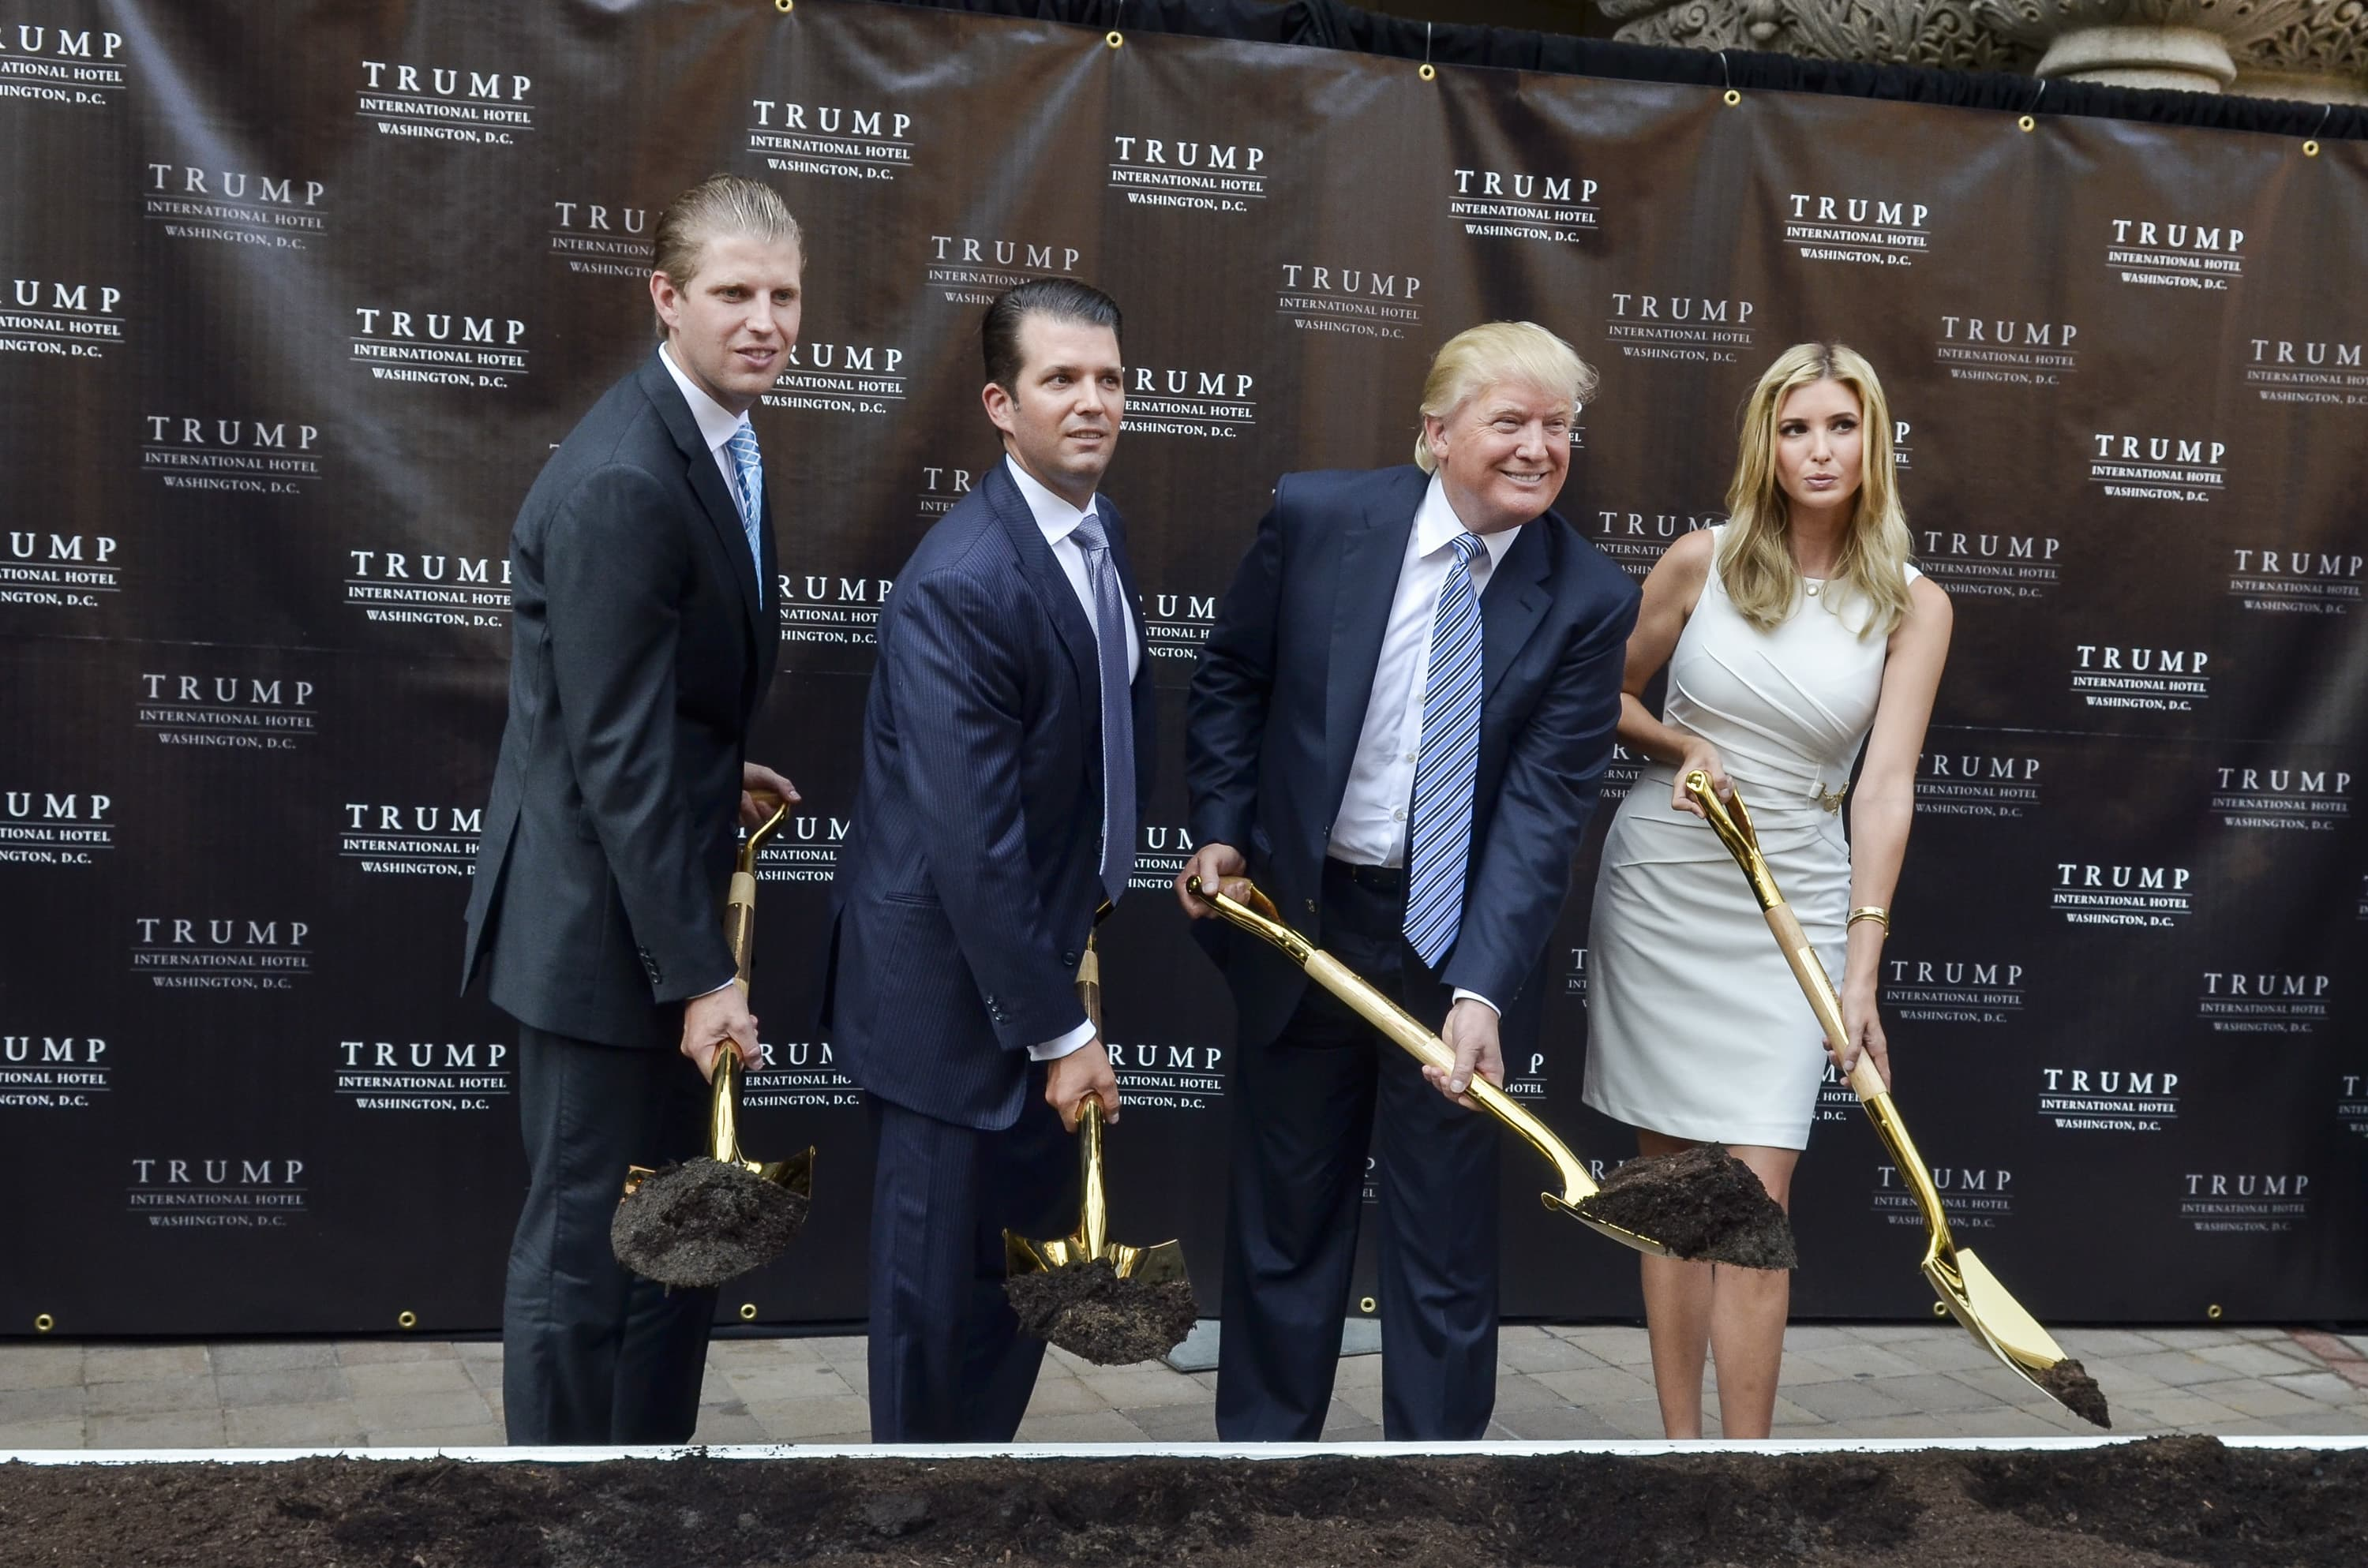 Eric Trump, Donald Trump Jr., Donald Trump and Ivanka Trump attend the Trump International Hotel Washington, D.C Groundbreaking Ceremony at Old Post Office on July 23, 2014 in Washington, DC.